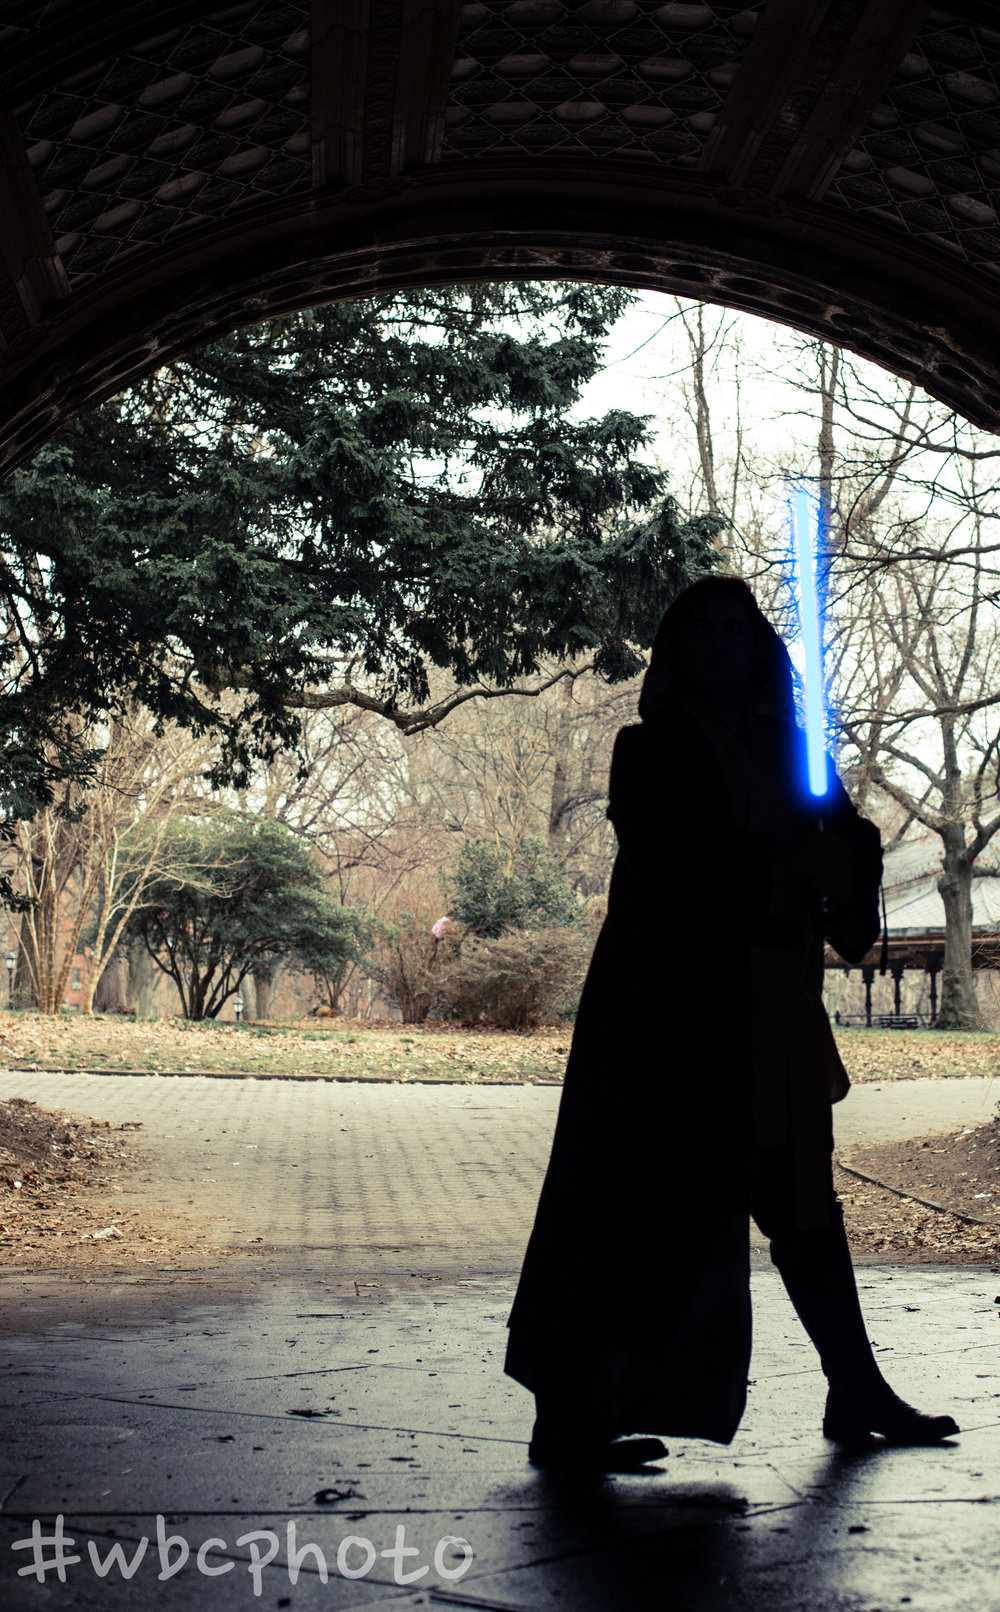 Princess Chris Cosplay does Jedi Knight-WBC Photo